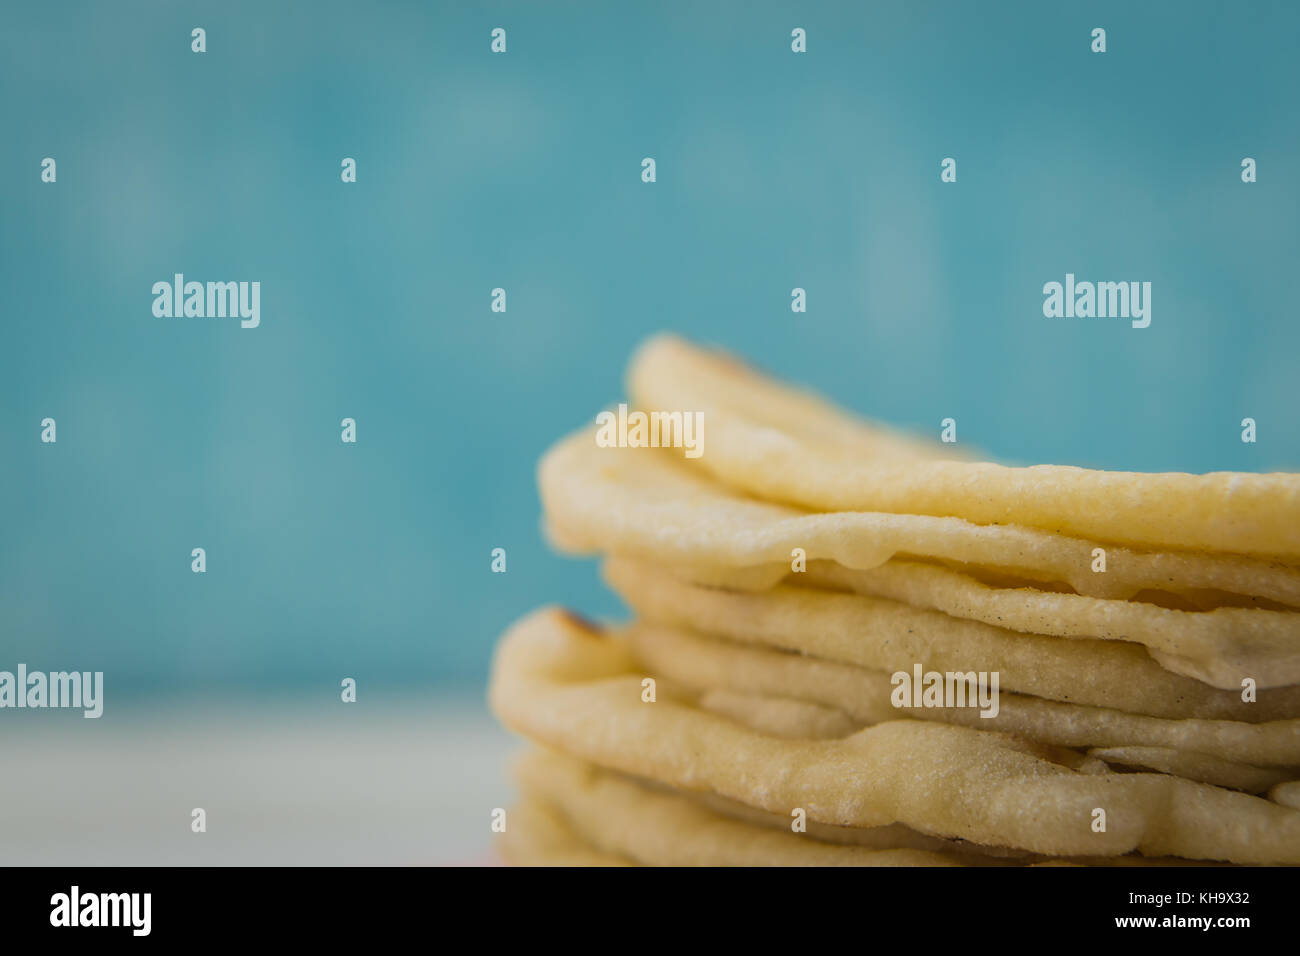 Detail on Homemade Tortillas with copy space over blue background - Stock Image